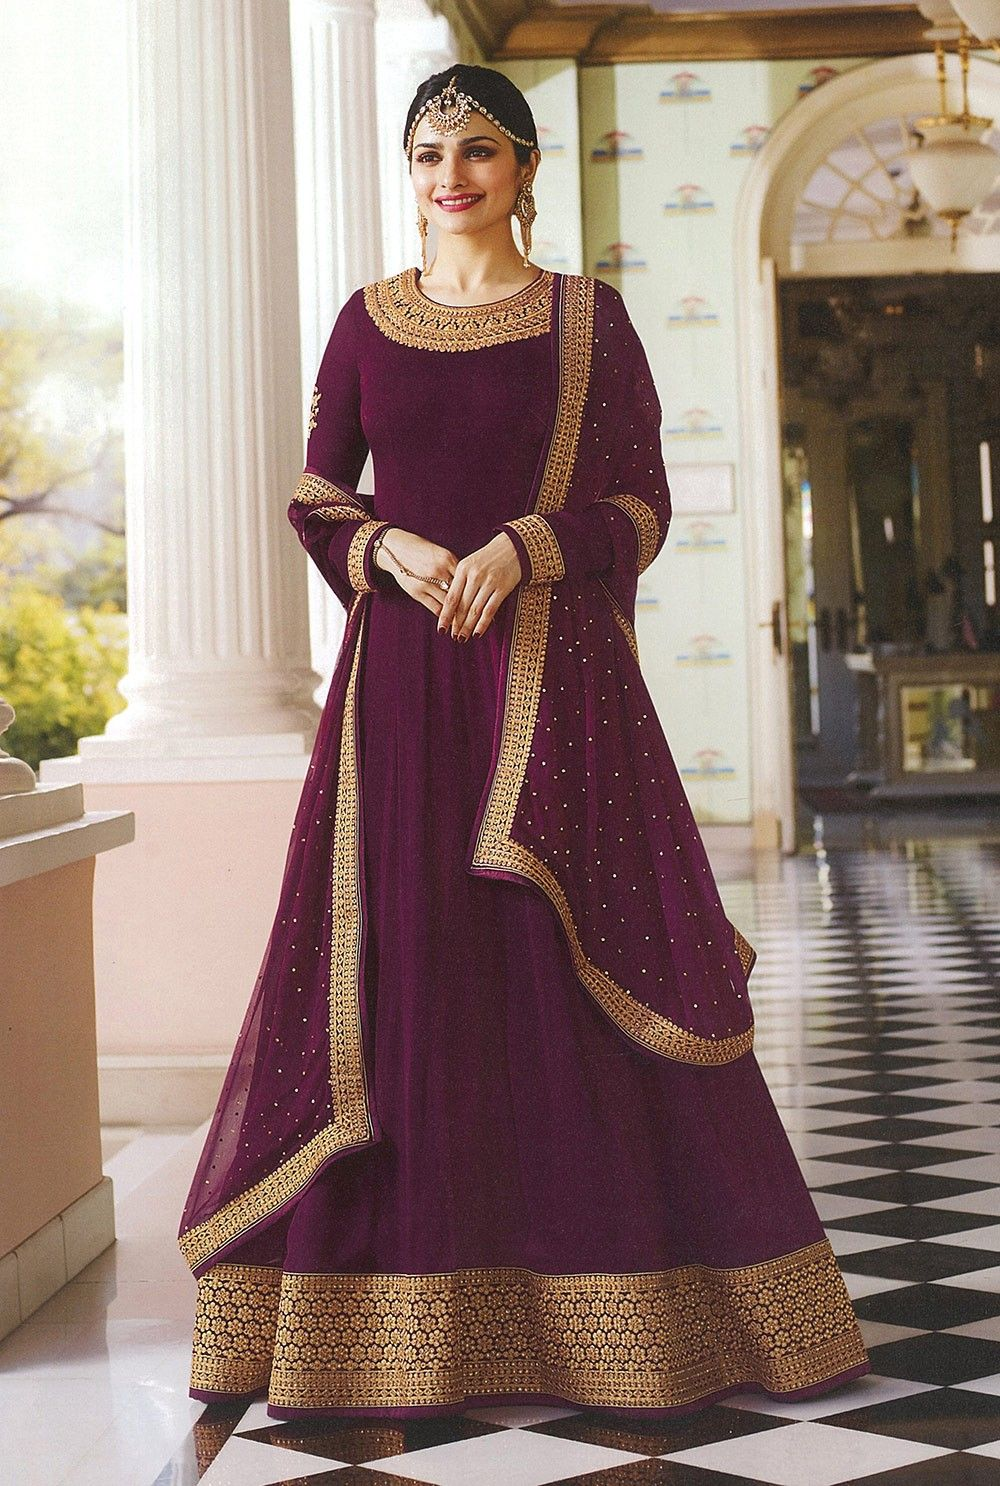 8fb956900 Wine color fron open Indian designer anarkali suit with pants in ...